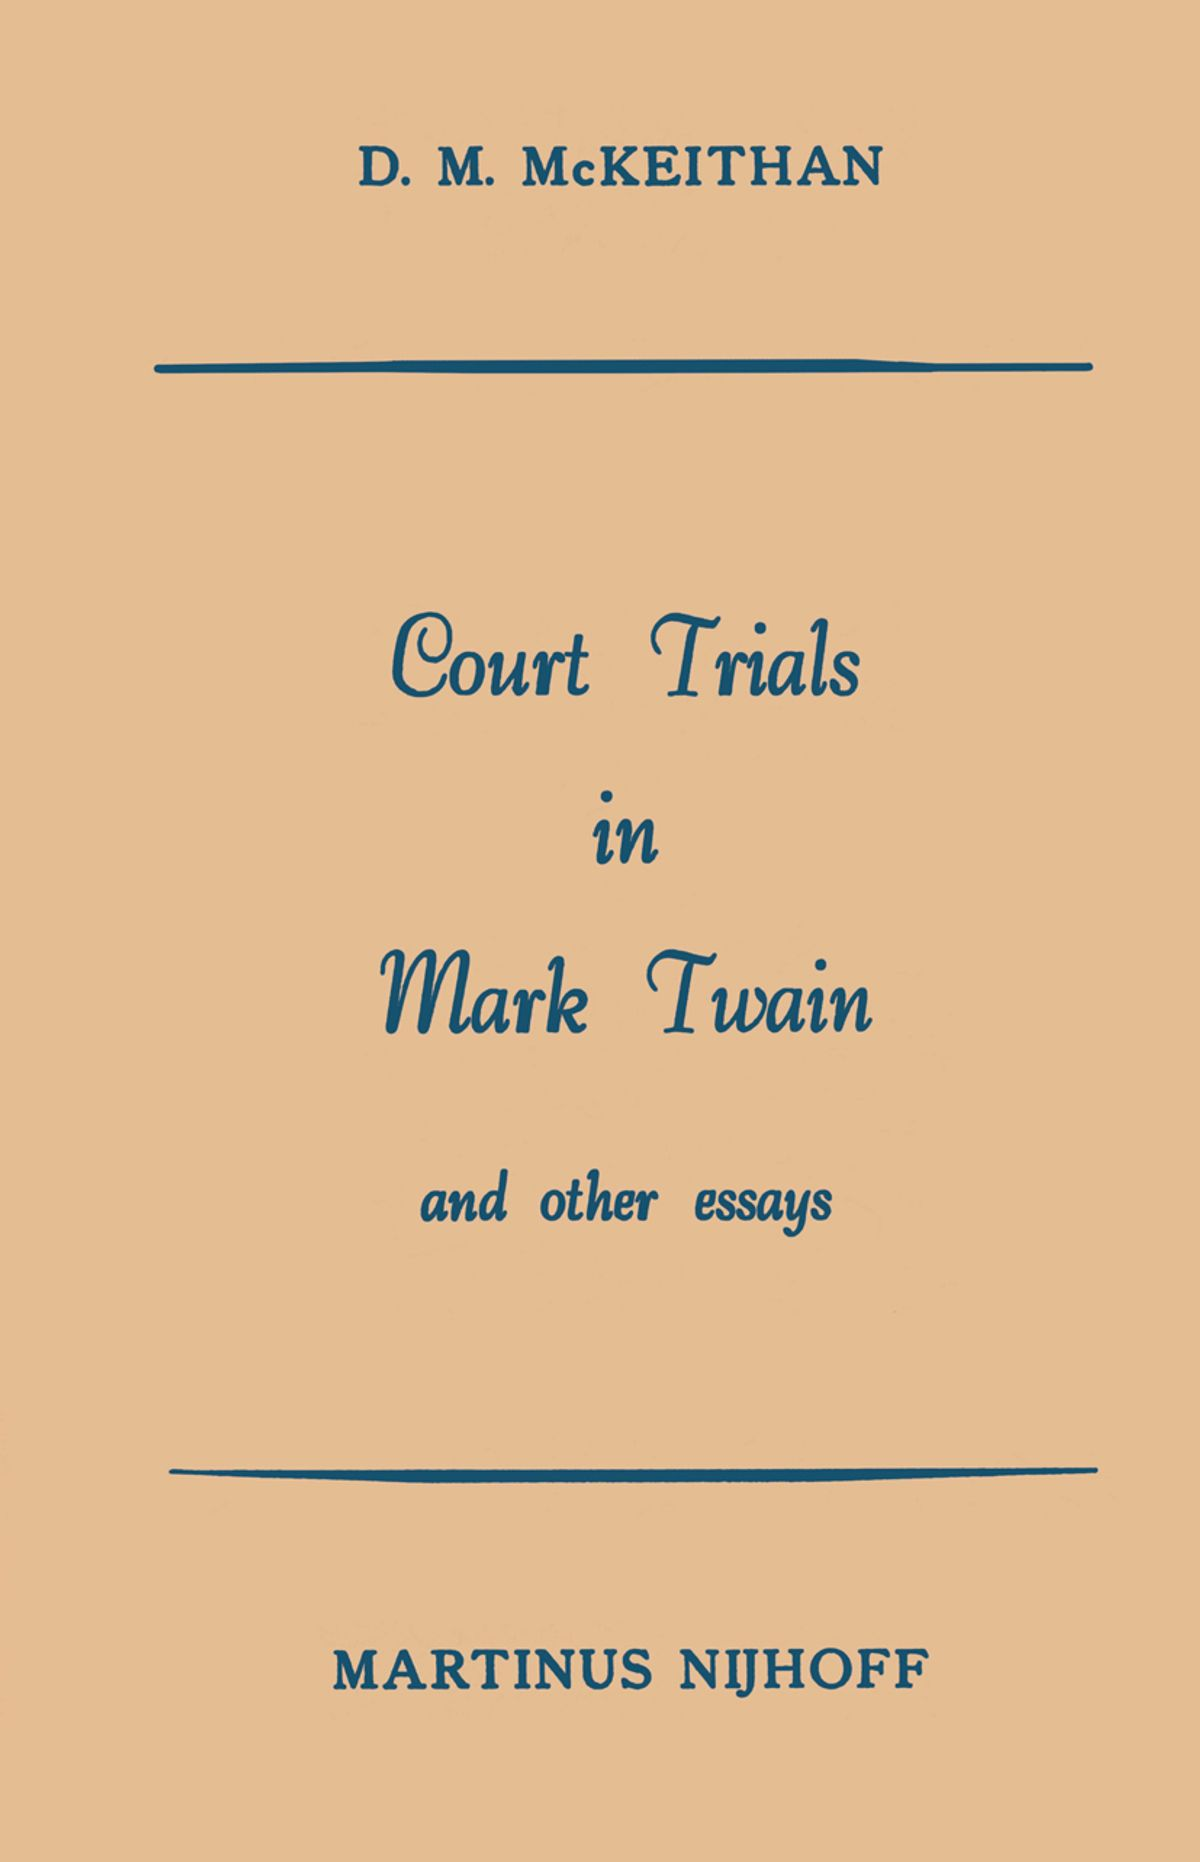 006 Court Trials In Mark Twain And Other Essays Essay Surprising Pdf On Writing Nonfiction Full